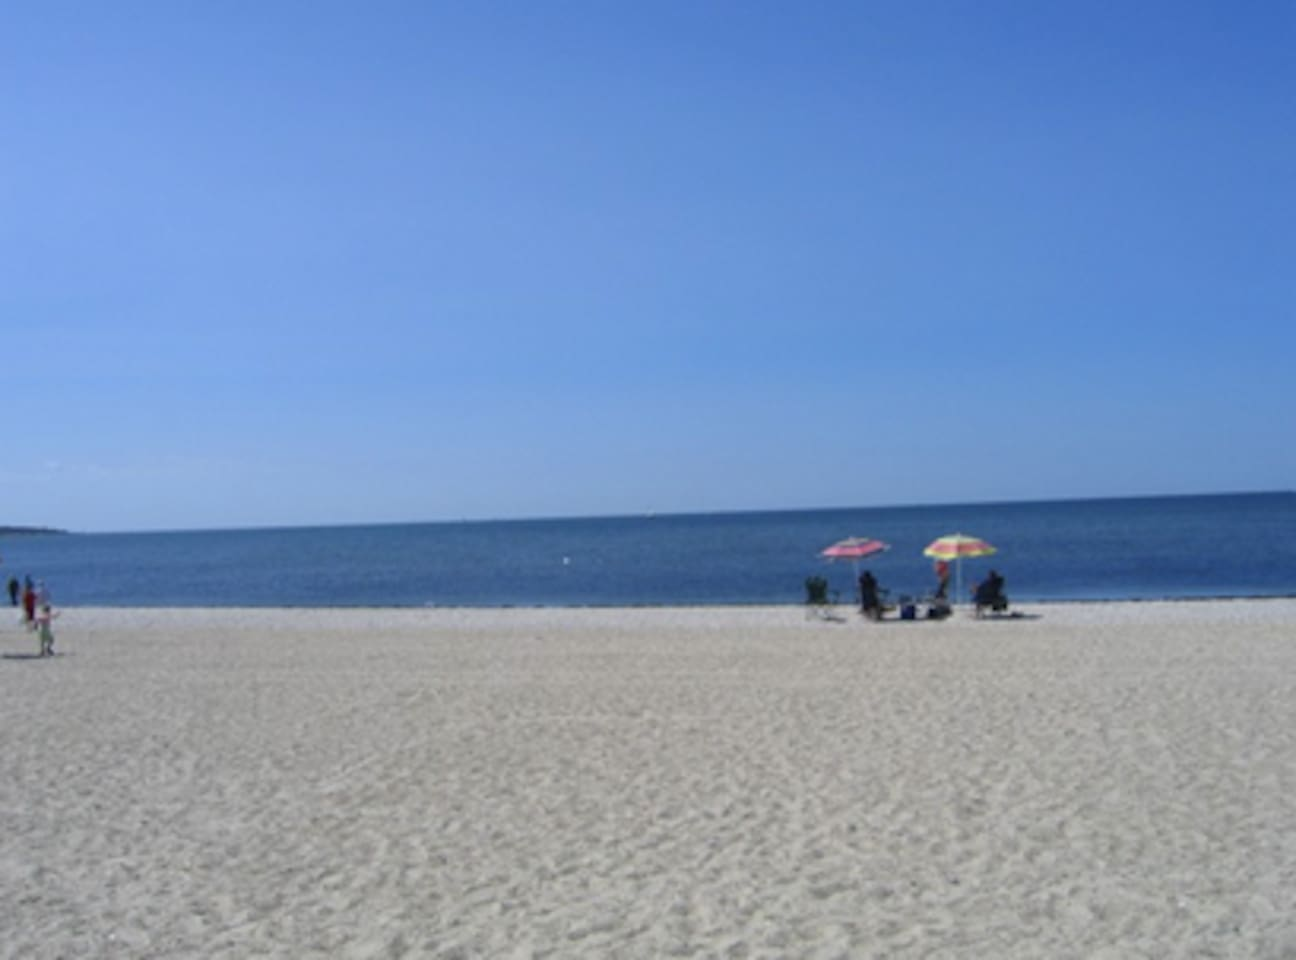 Spend the day at any of the beaches ~ Craigville is our absolute favorite.